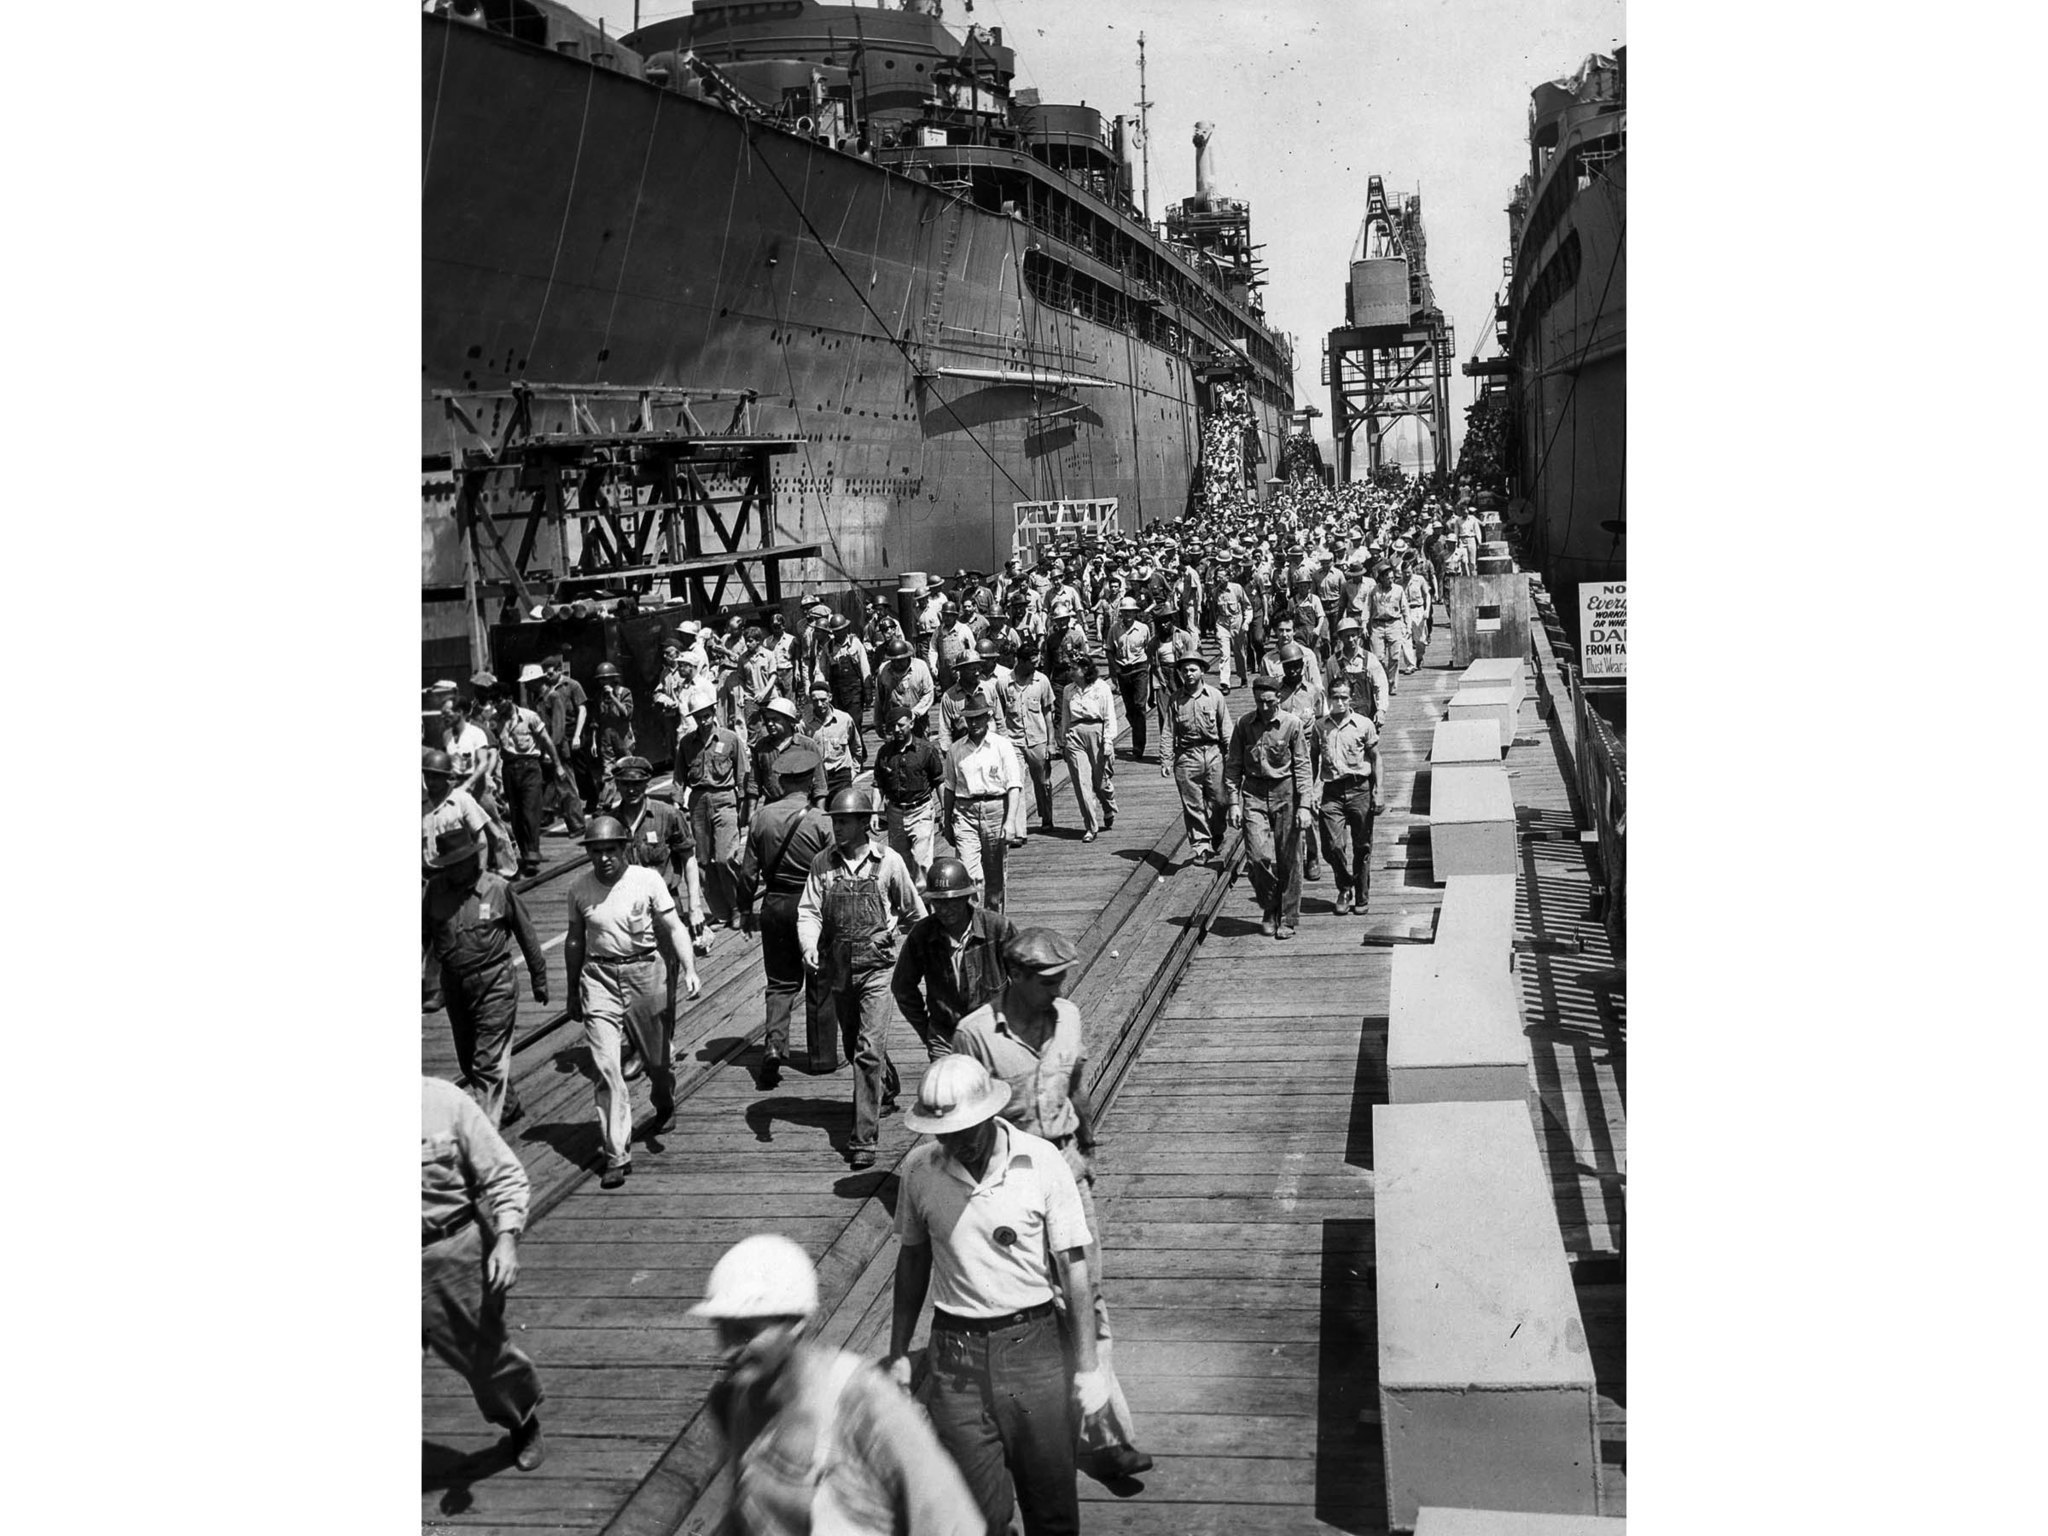 Sep. 6, 1943: World War II Labor Day